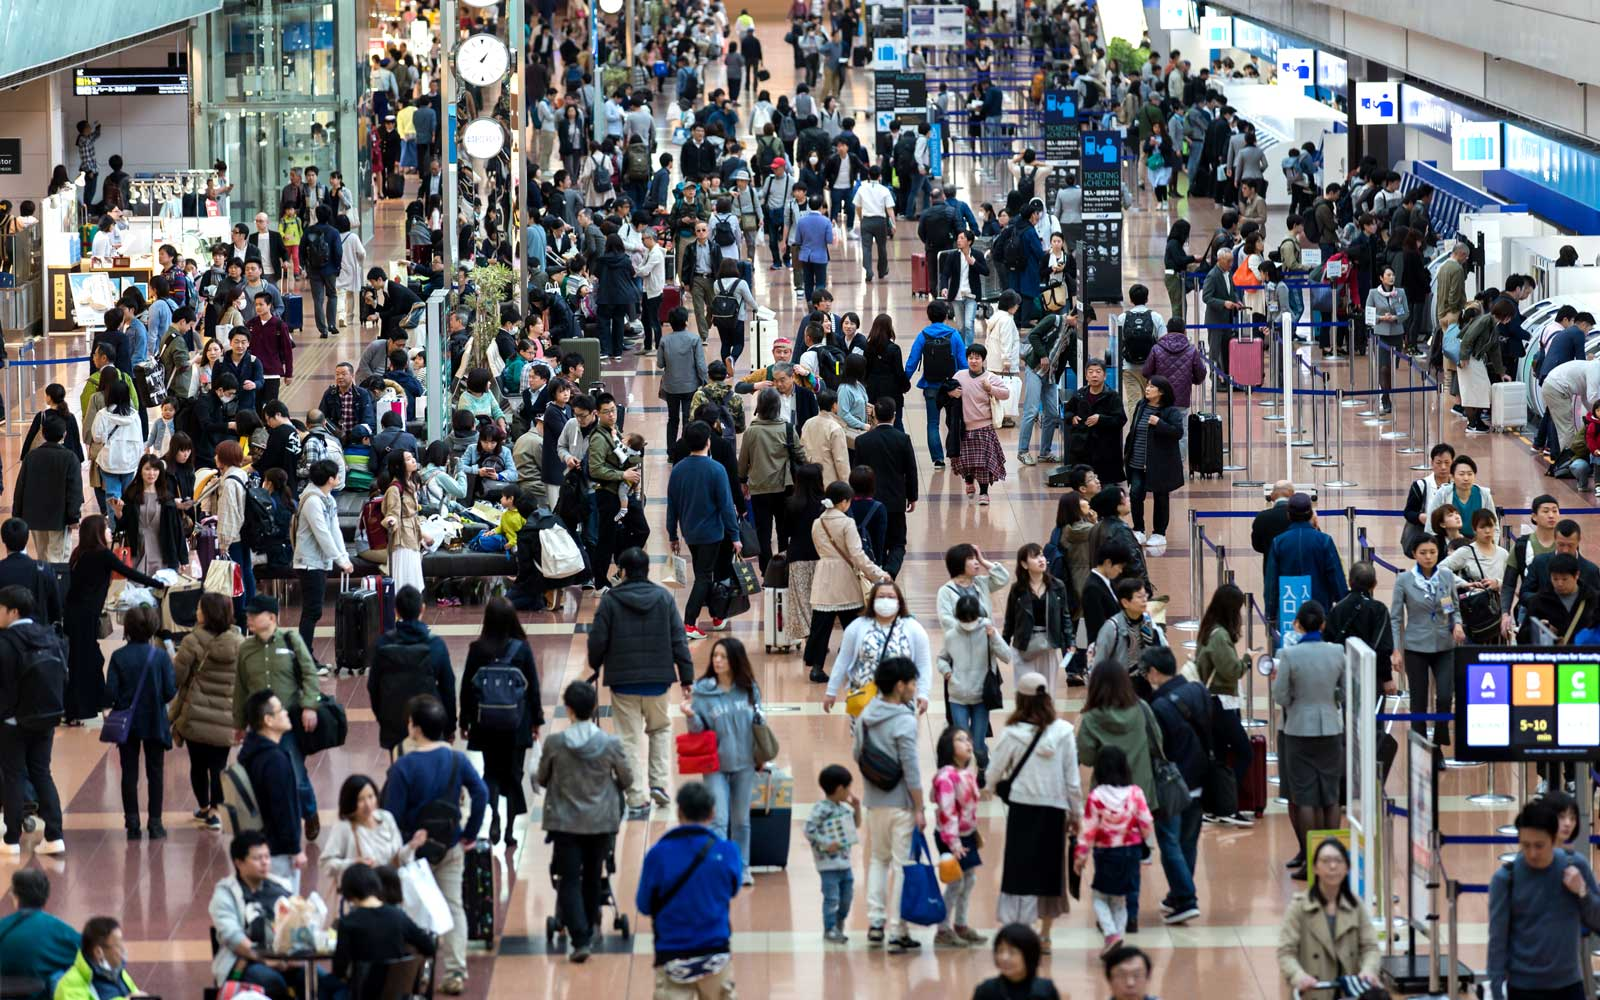 July passengers number up but still below pre-pandemic numbers